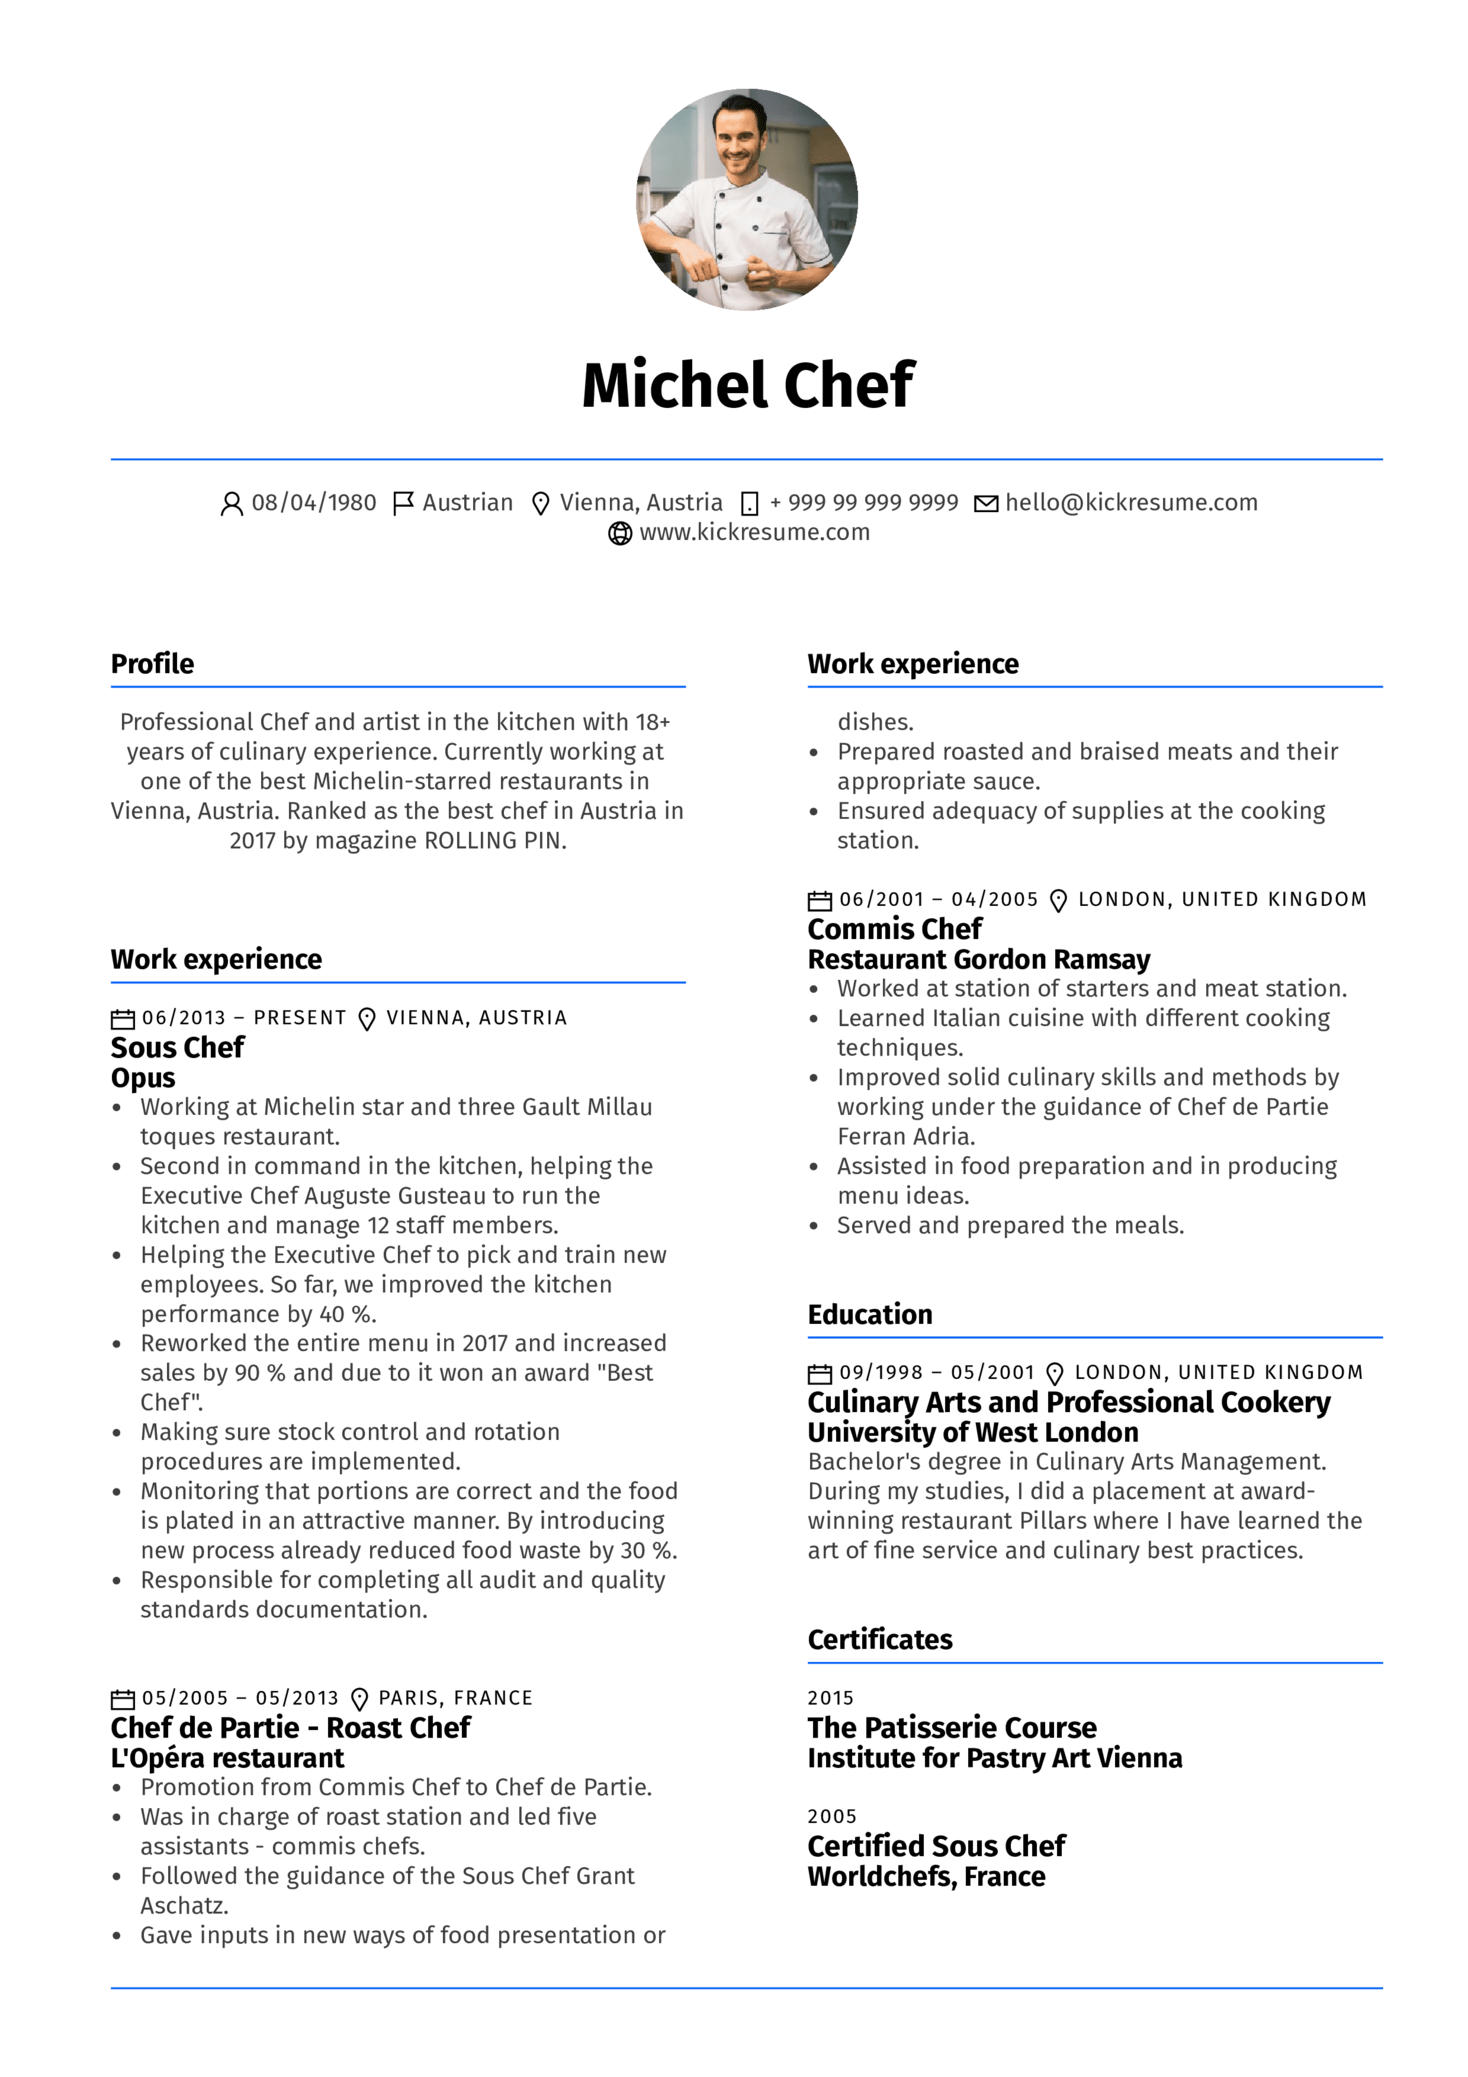 Resume Examples by Real People: Sous Chef Resume Example | Kickresume